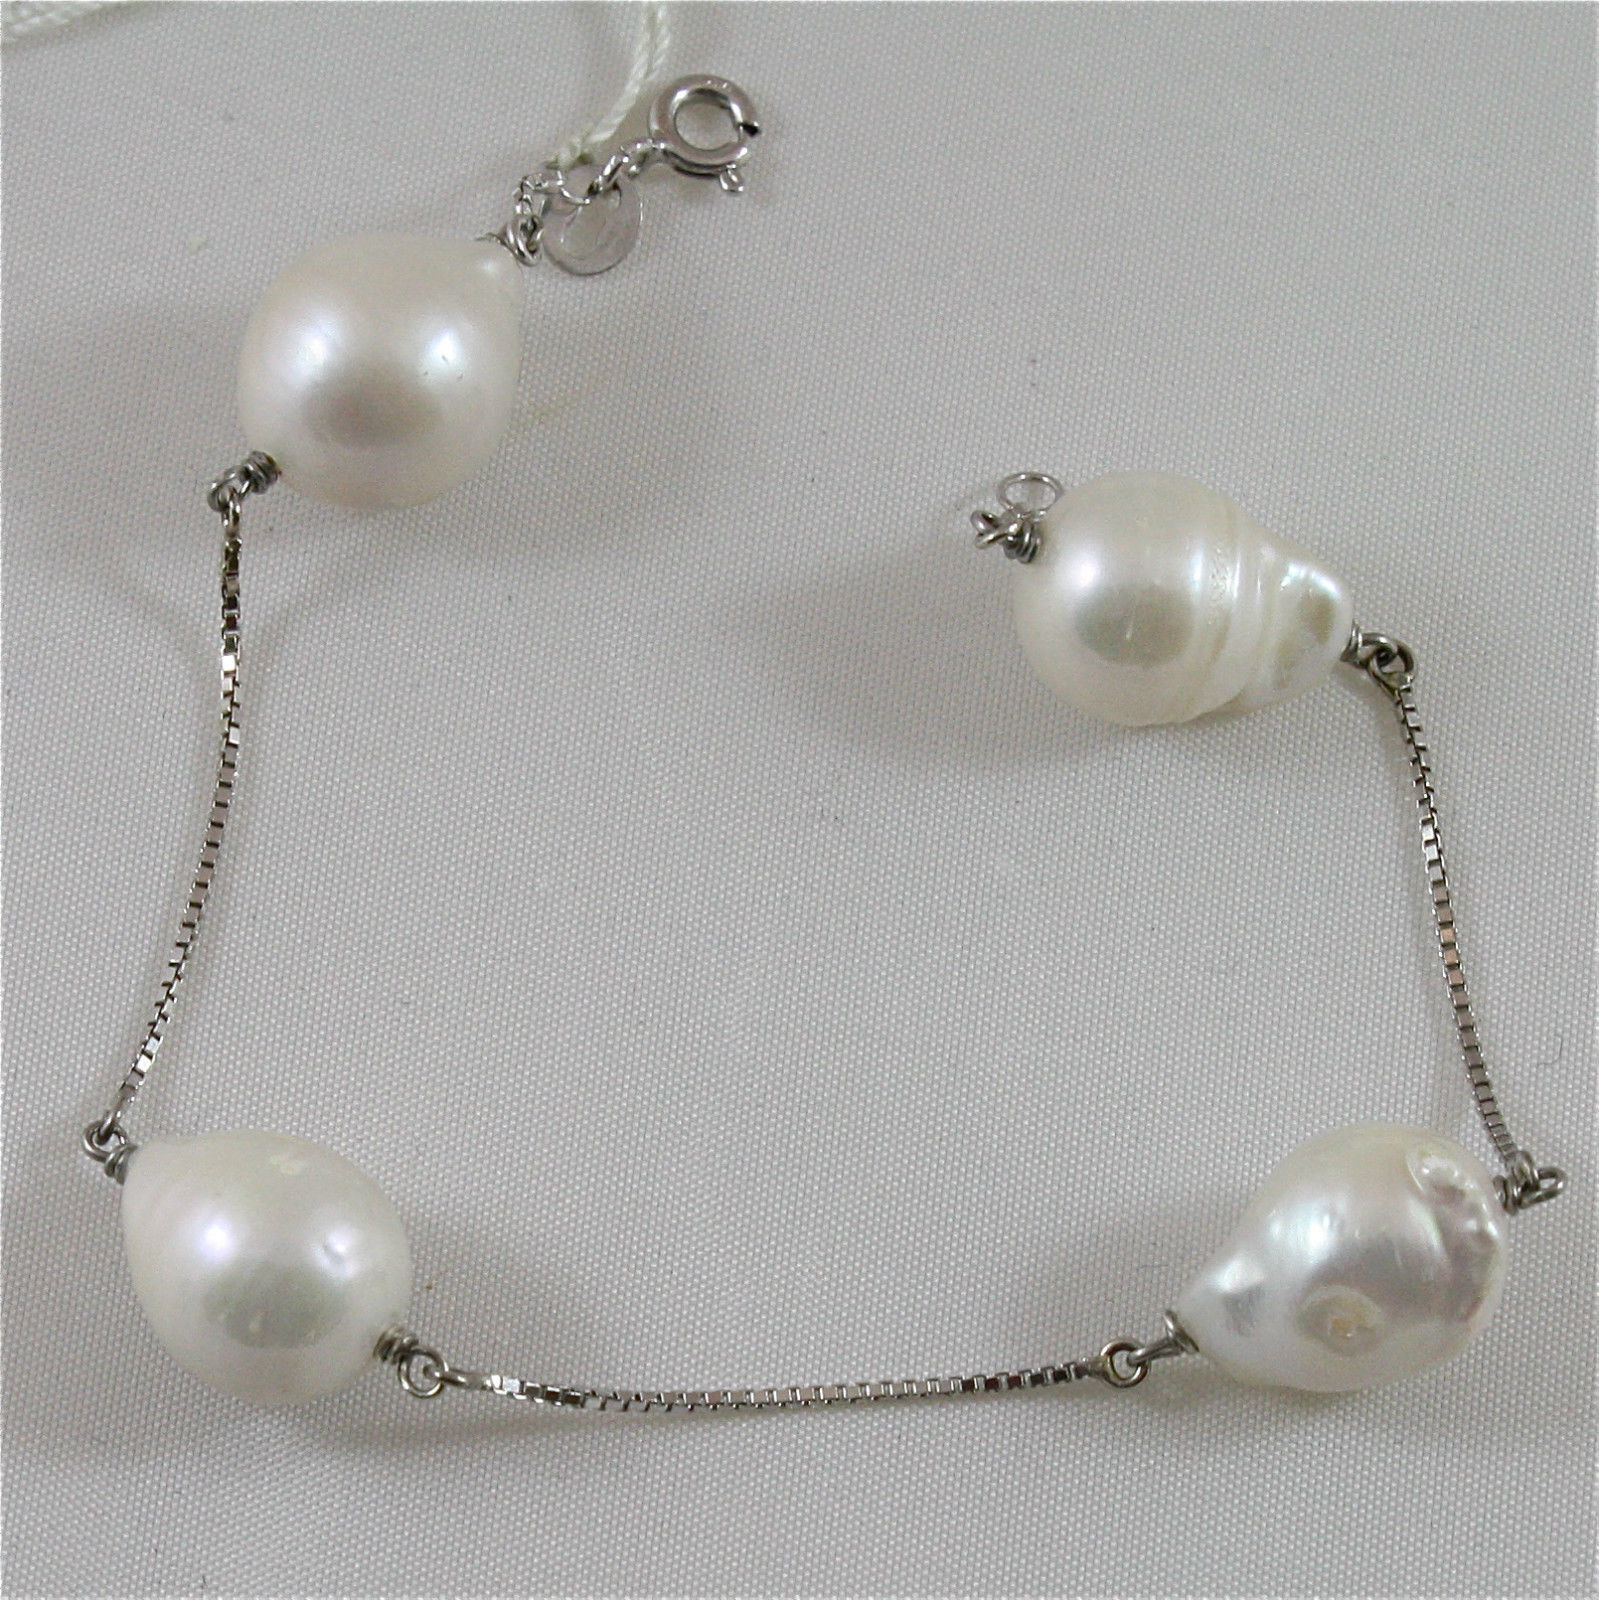 18K WHITE GOLD WITH WHITE DROP PEARLS (13-14 MM DIAM.) BRACELET